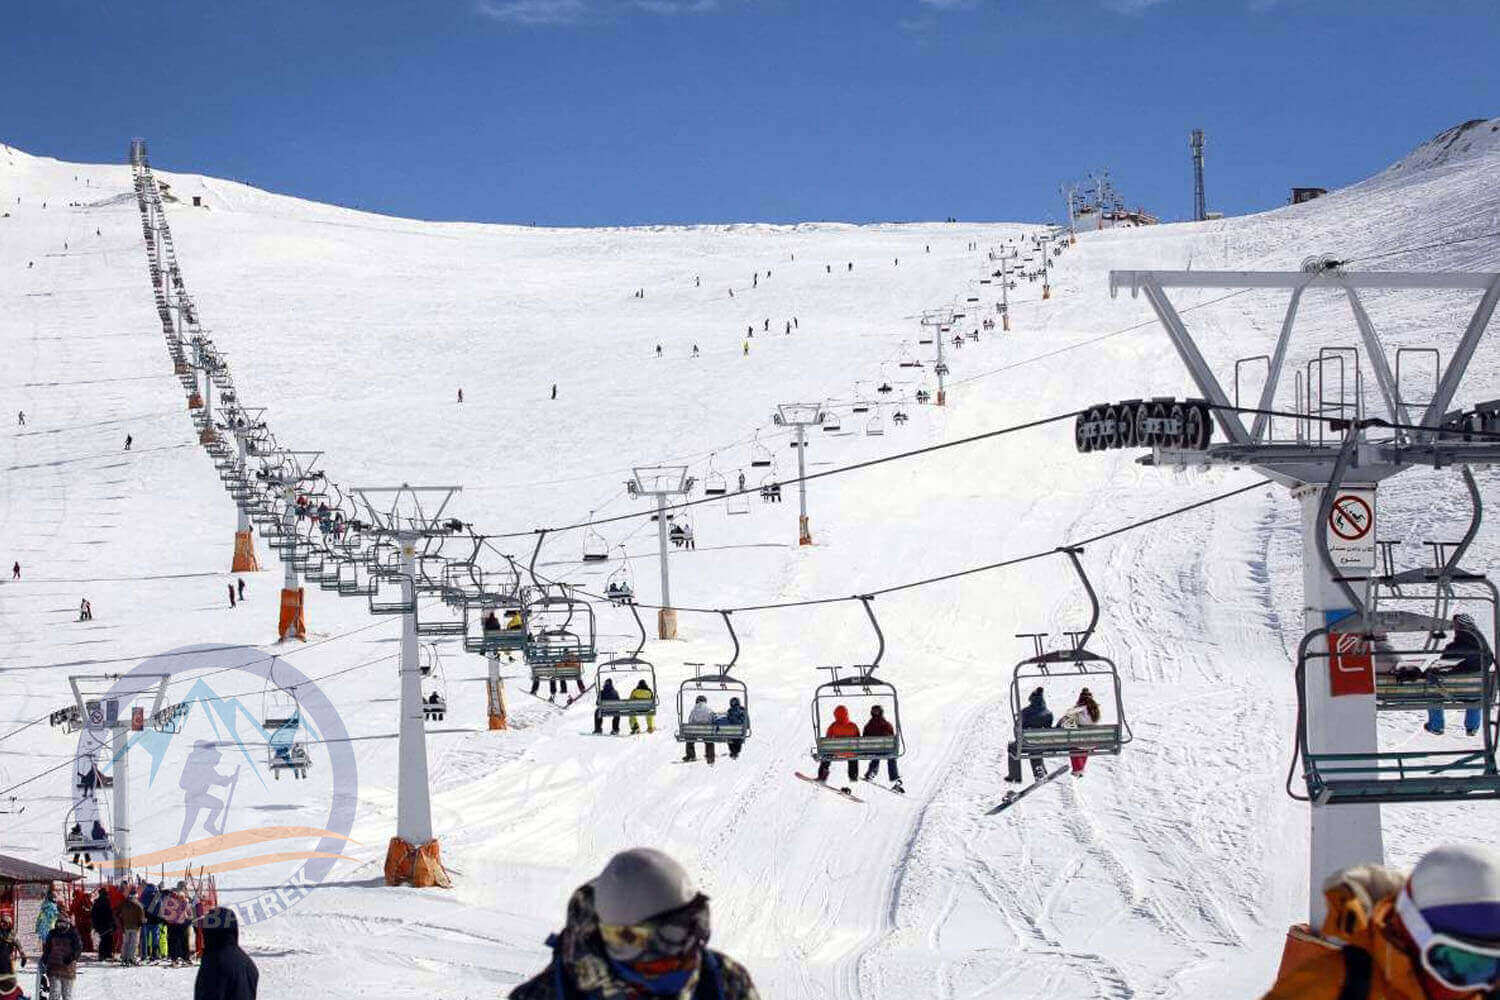 Alibabatrek Iran tours Iran tour packages Skiing in iran ski resort Iran Cultural tour Tochal Ski Resort, Tochal Hotel